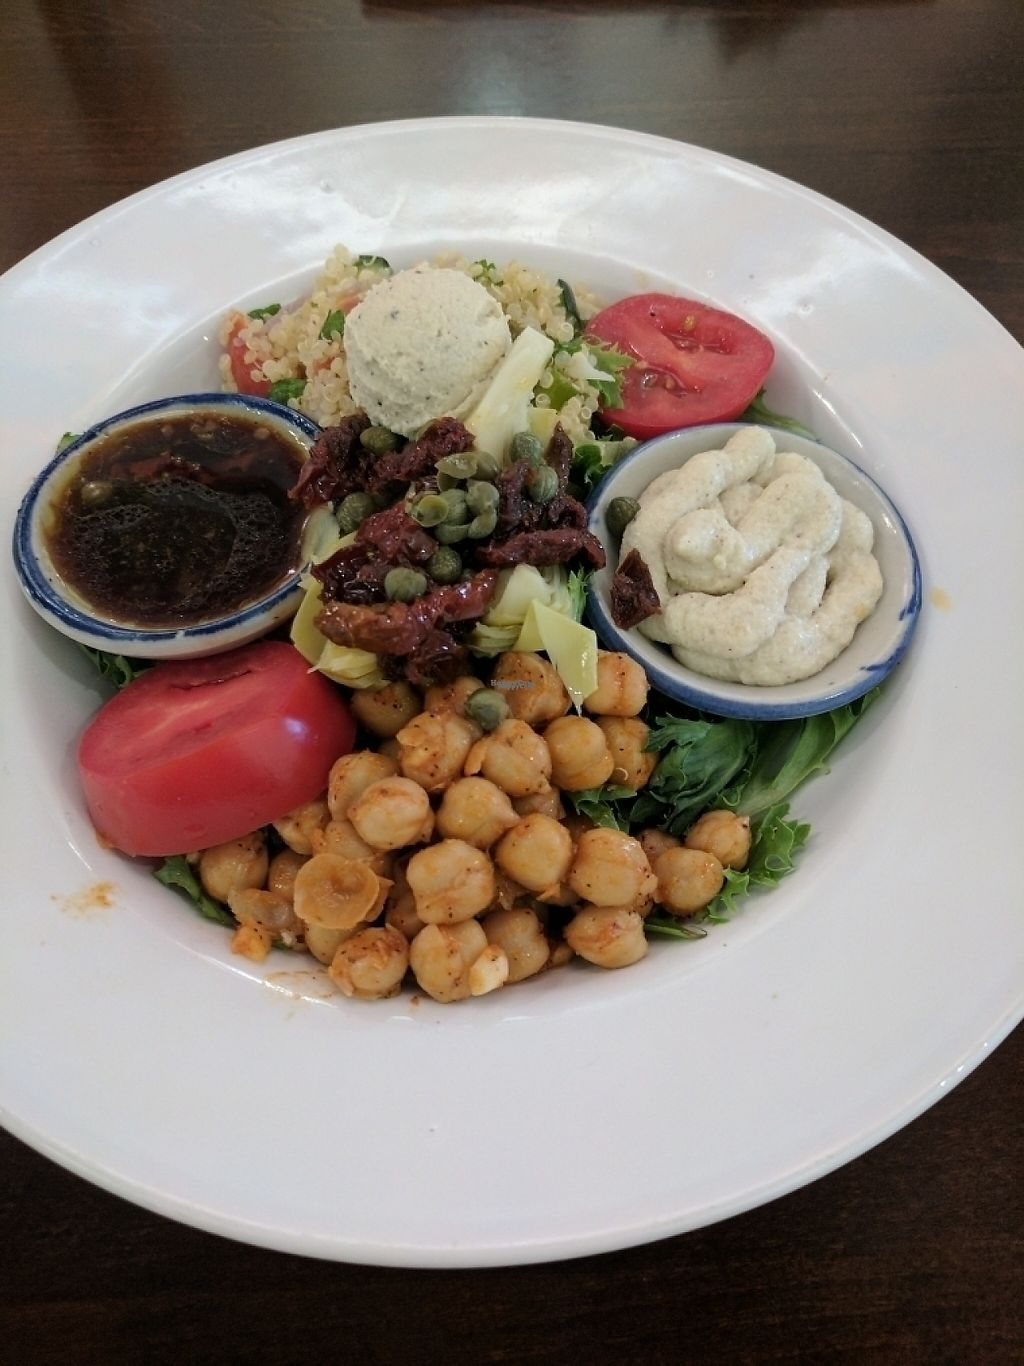 """Photo of Plant Food Supper Club  by <a href=""""/members/profile/IdyVegan"""">IdyVegan</a> <br/>Mediterranean bowl <br/> March 20, 2017  - <a href='/contact/abuse/image/82687/238606'>Report</a>"""